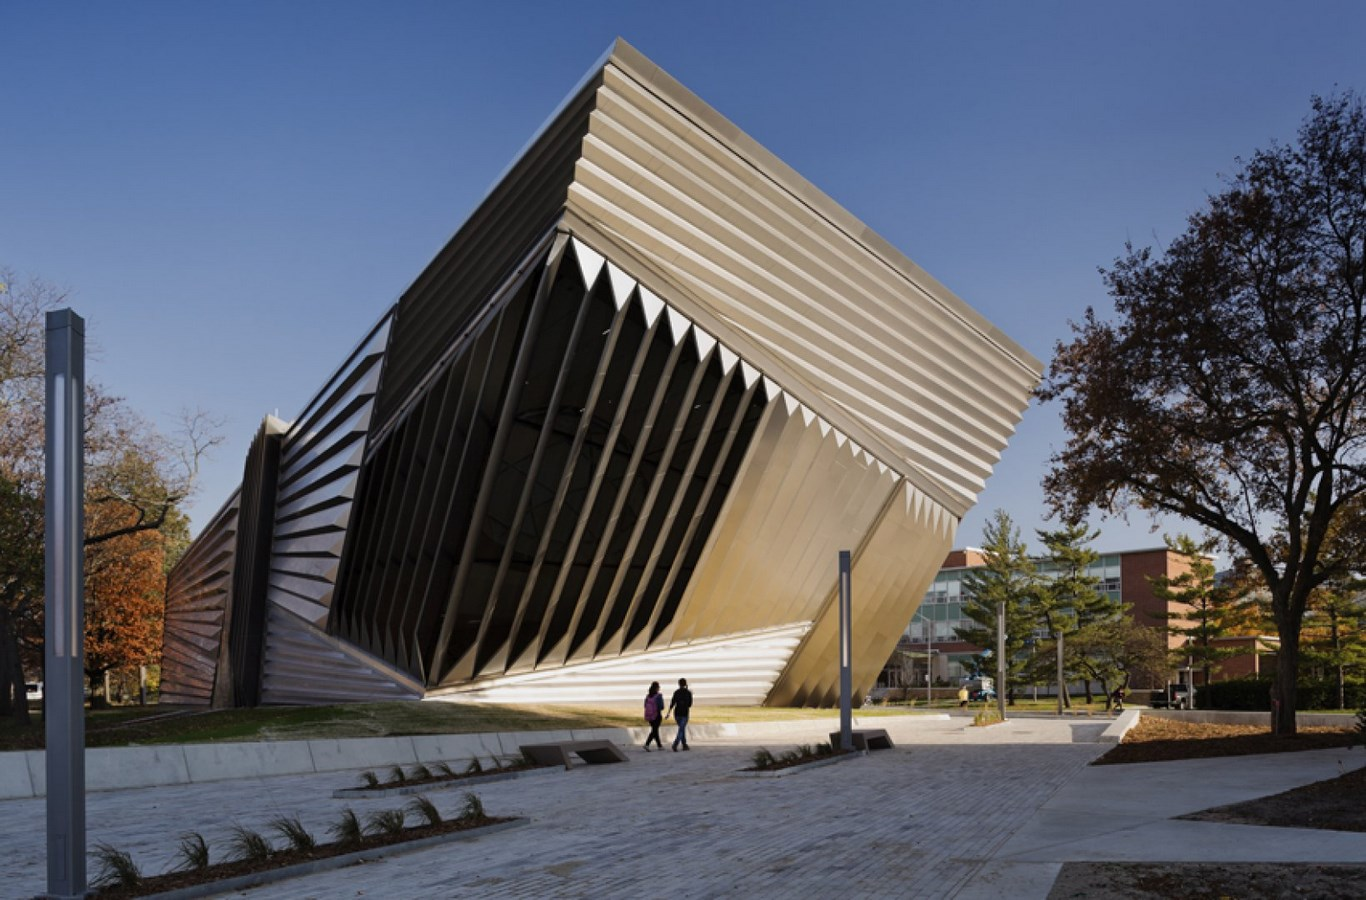 30 Projects That Define Zaha Hadid's Style - Eli & Edythe Broad Art Museum, USA